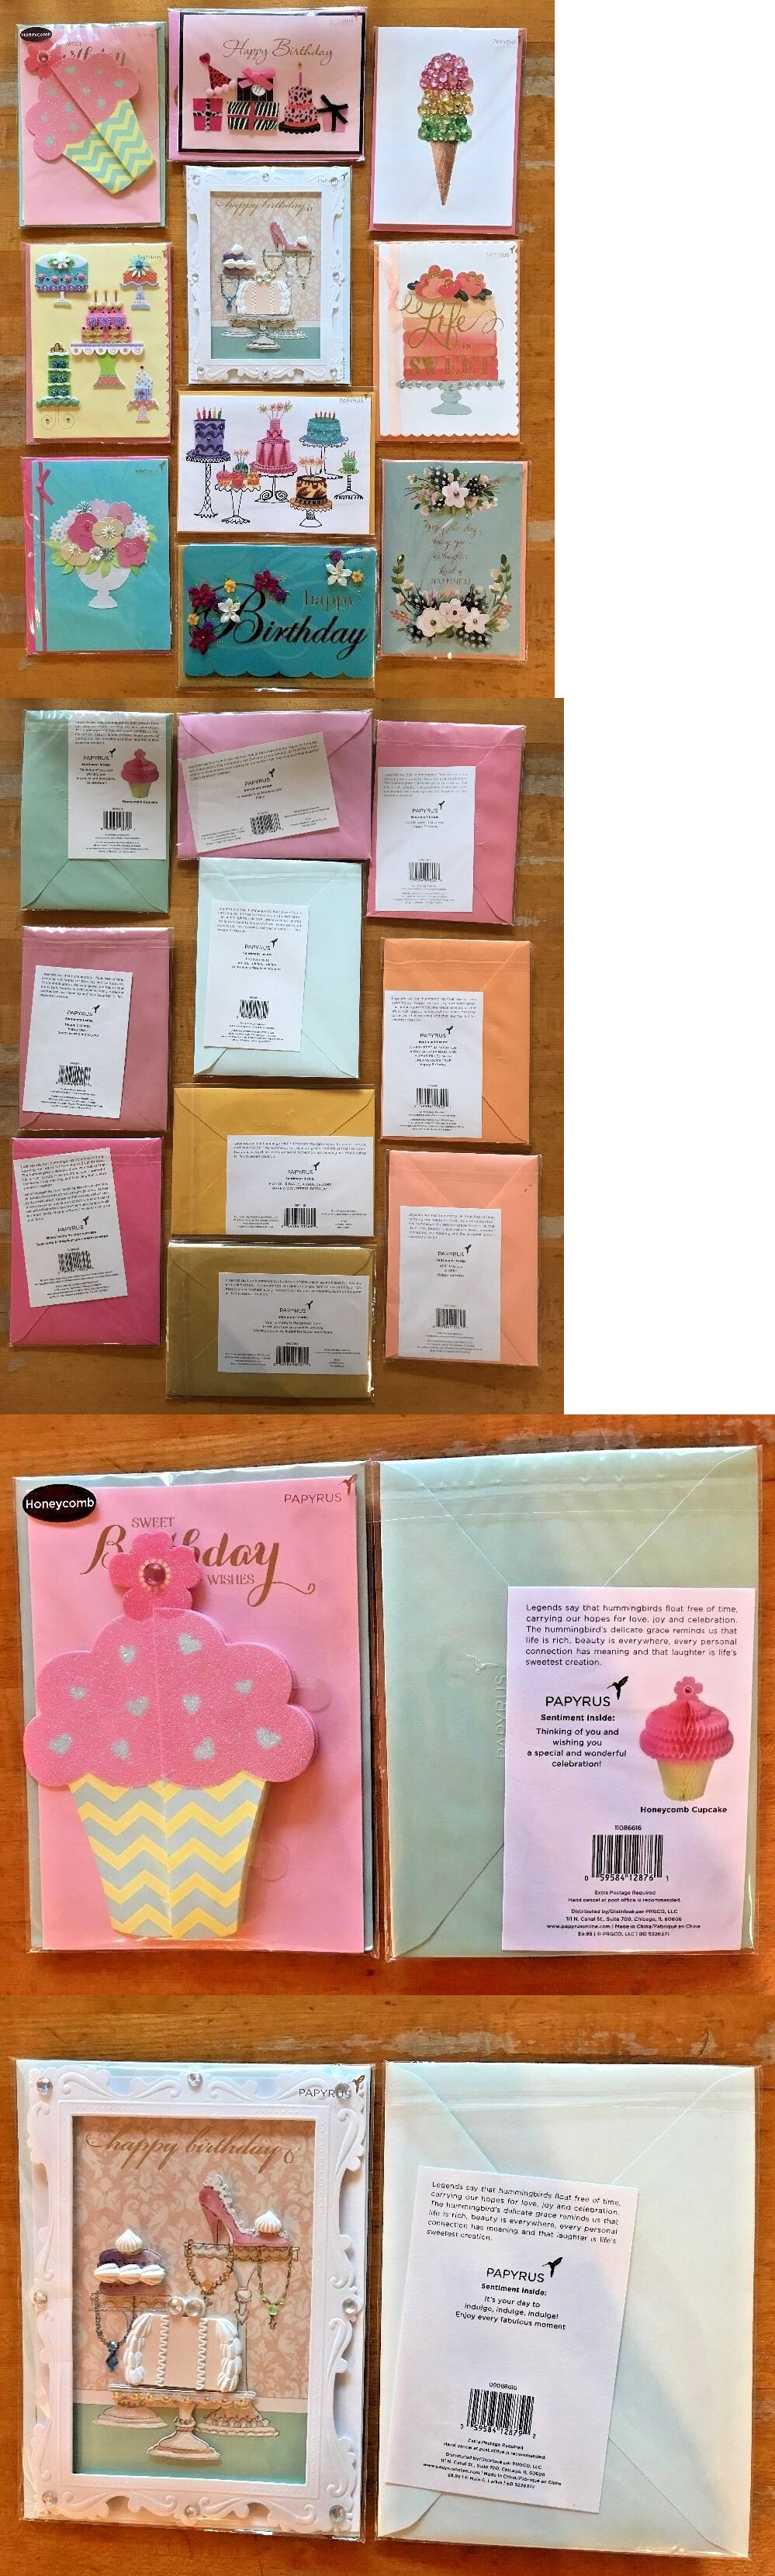 Greeting cards and invitations 170098 10 papyrus birthday blank greeting cards and invitations 170098 10 papyrus birthday blank cards envelopes gold seals 92 value kristyandbryce Gallery